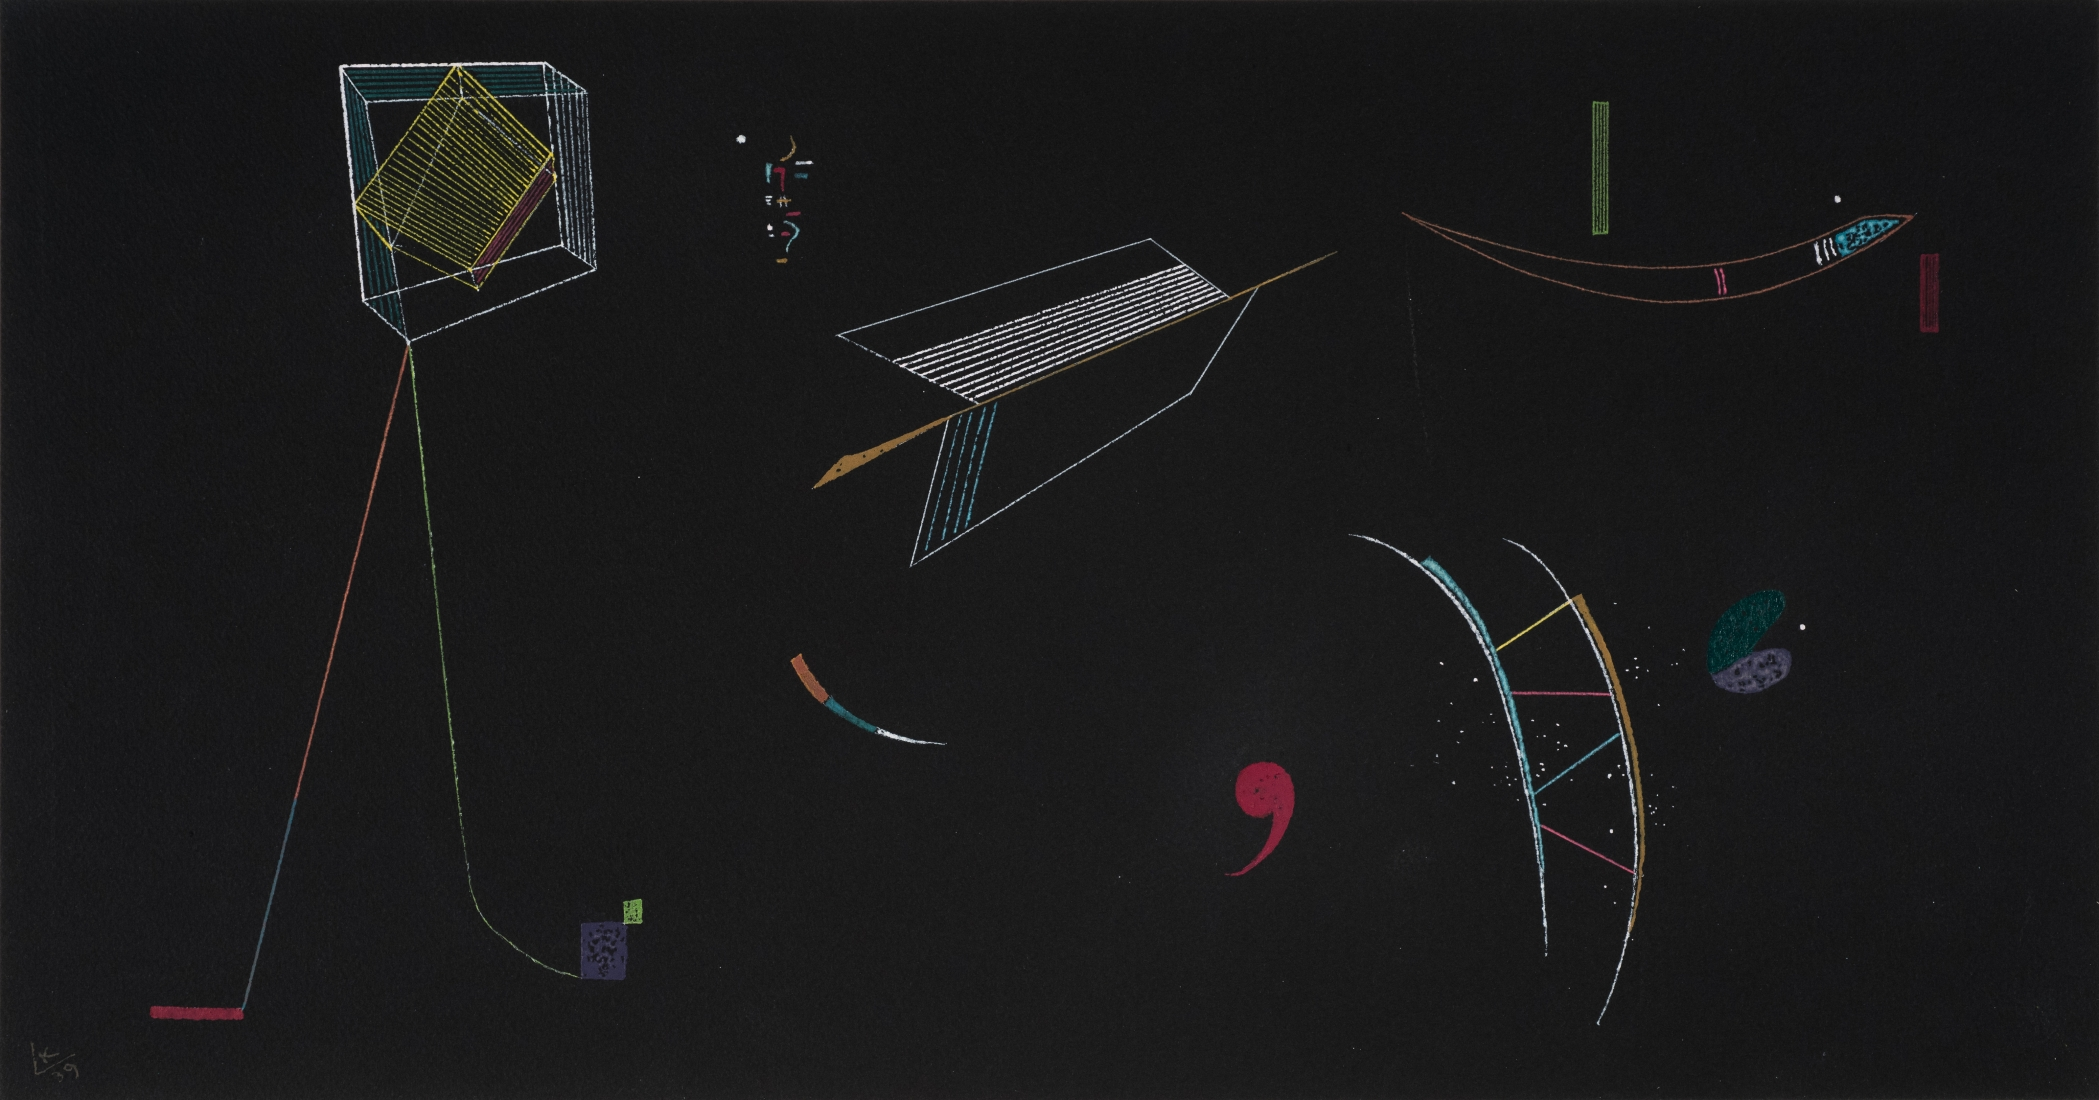 Wassily Kandinsky, Lines, 1939 Watercolor and tempera on black paper 10 1/4 x 19 1/2 inches